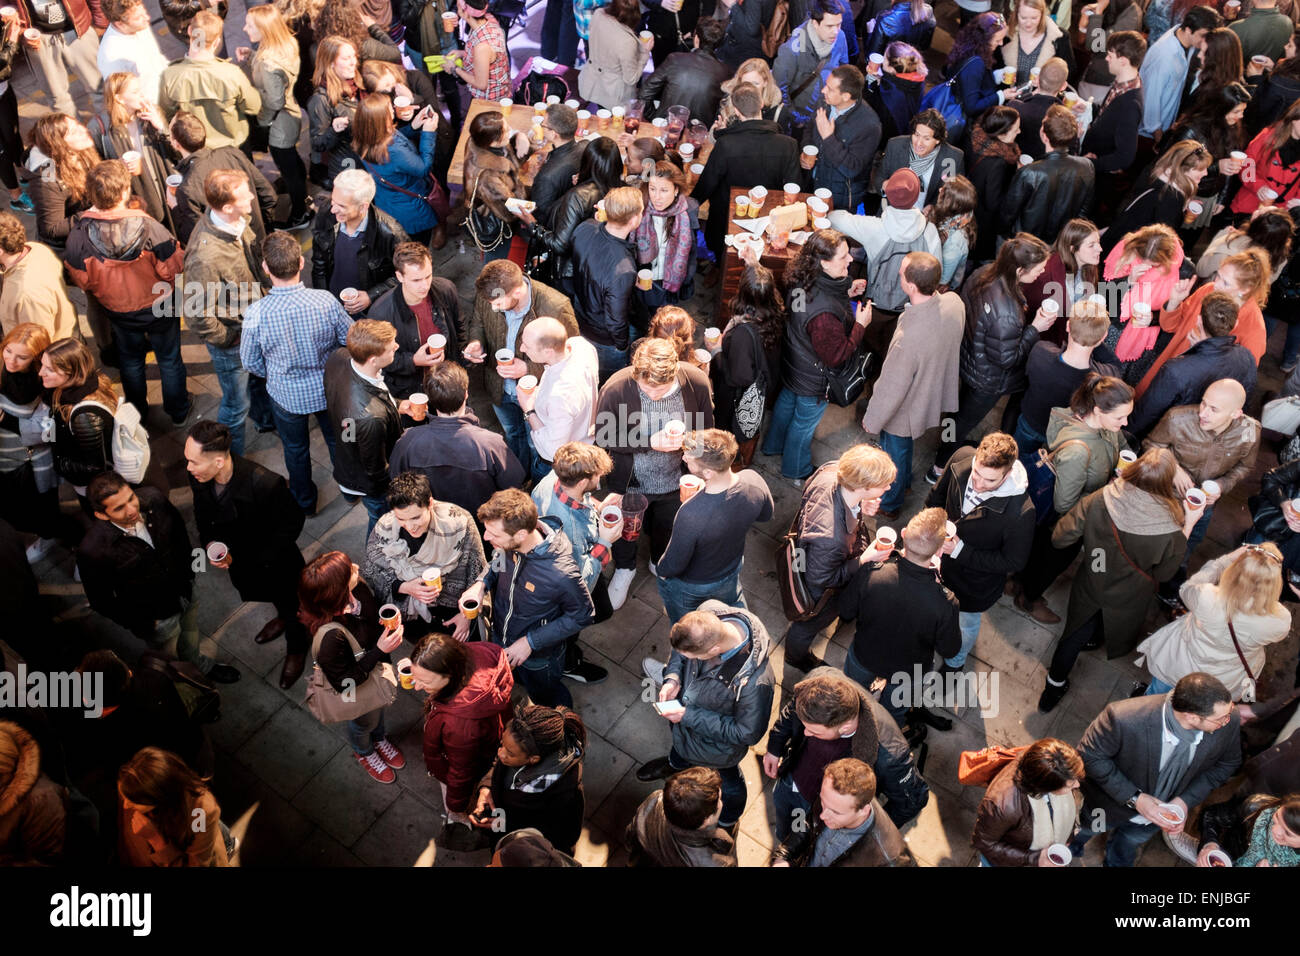 People having a drink ,The South Bank,London,England - Stock Image